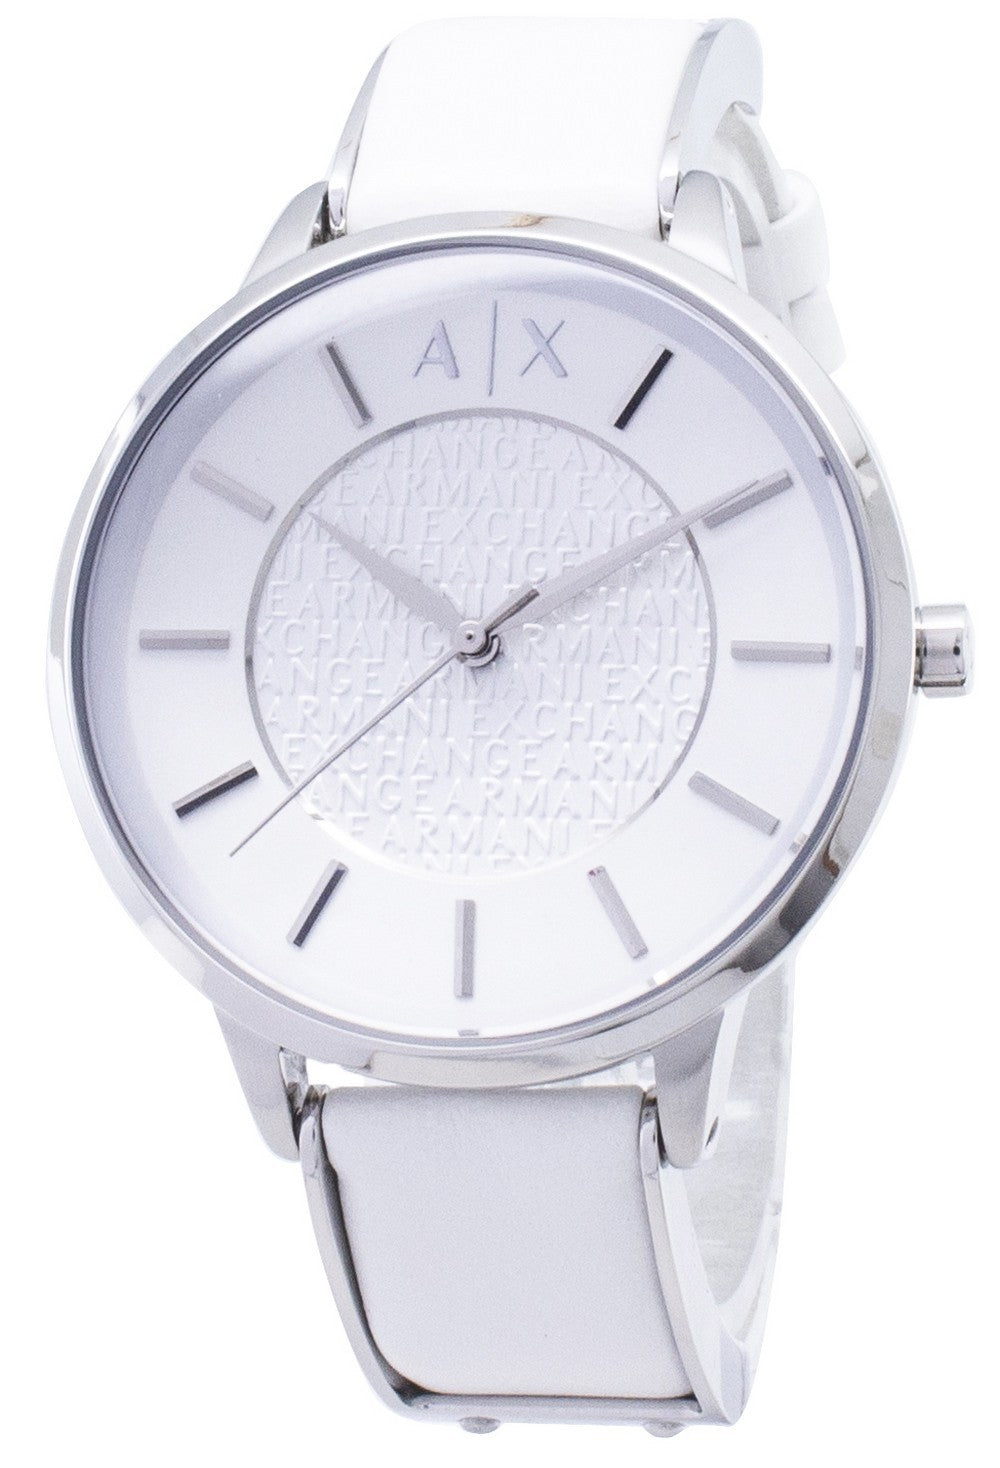 Armani Exchange White Dial White Leather AX5300 Ladies Watch, best prices, cheapest, discount, new, Cruze Watches